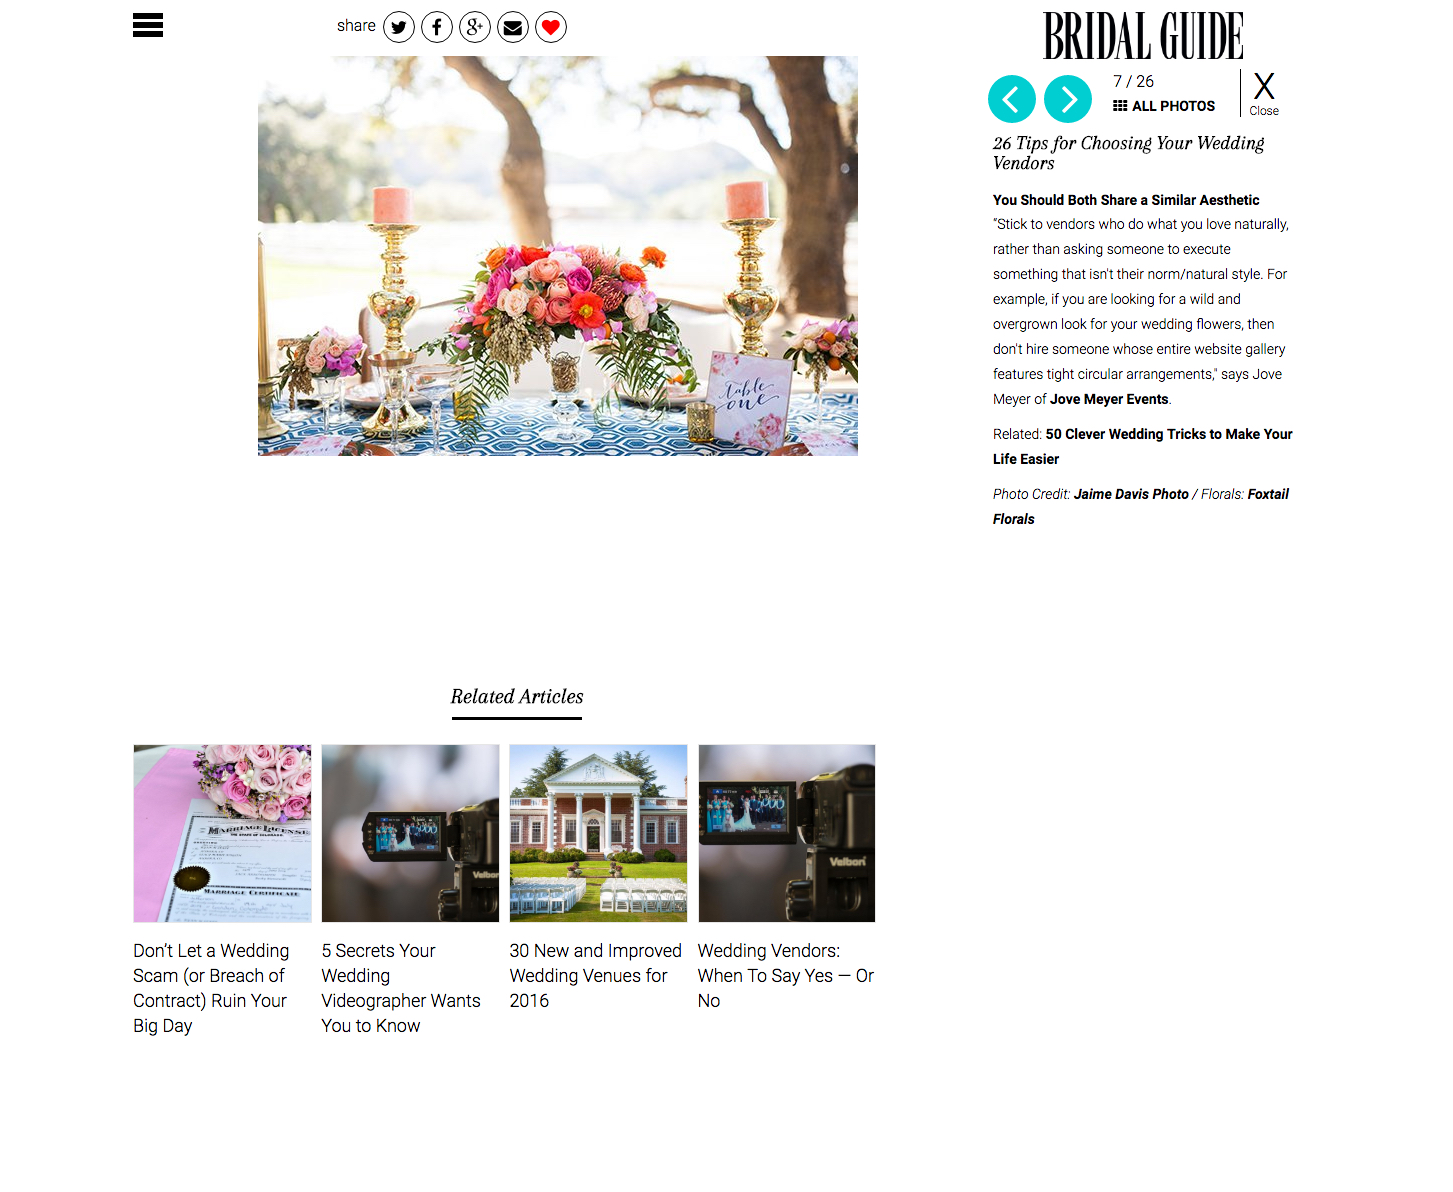 nyc wedding planner jove meyer events featured in bridal guide.jpg